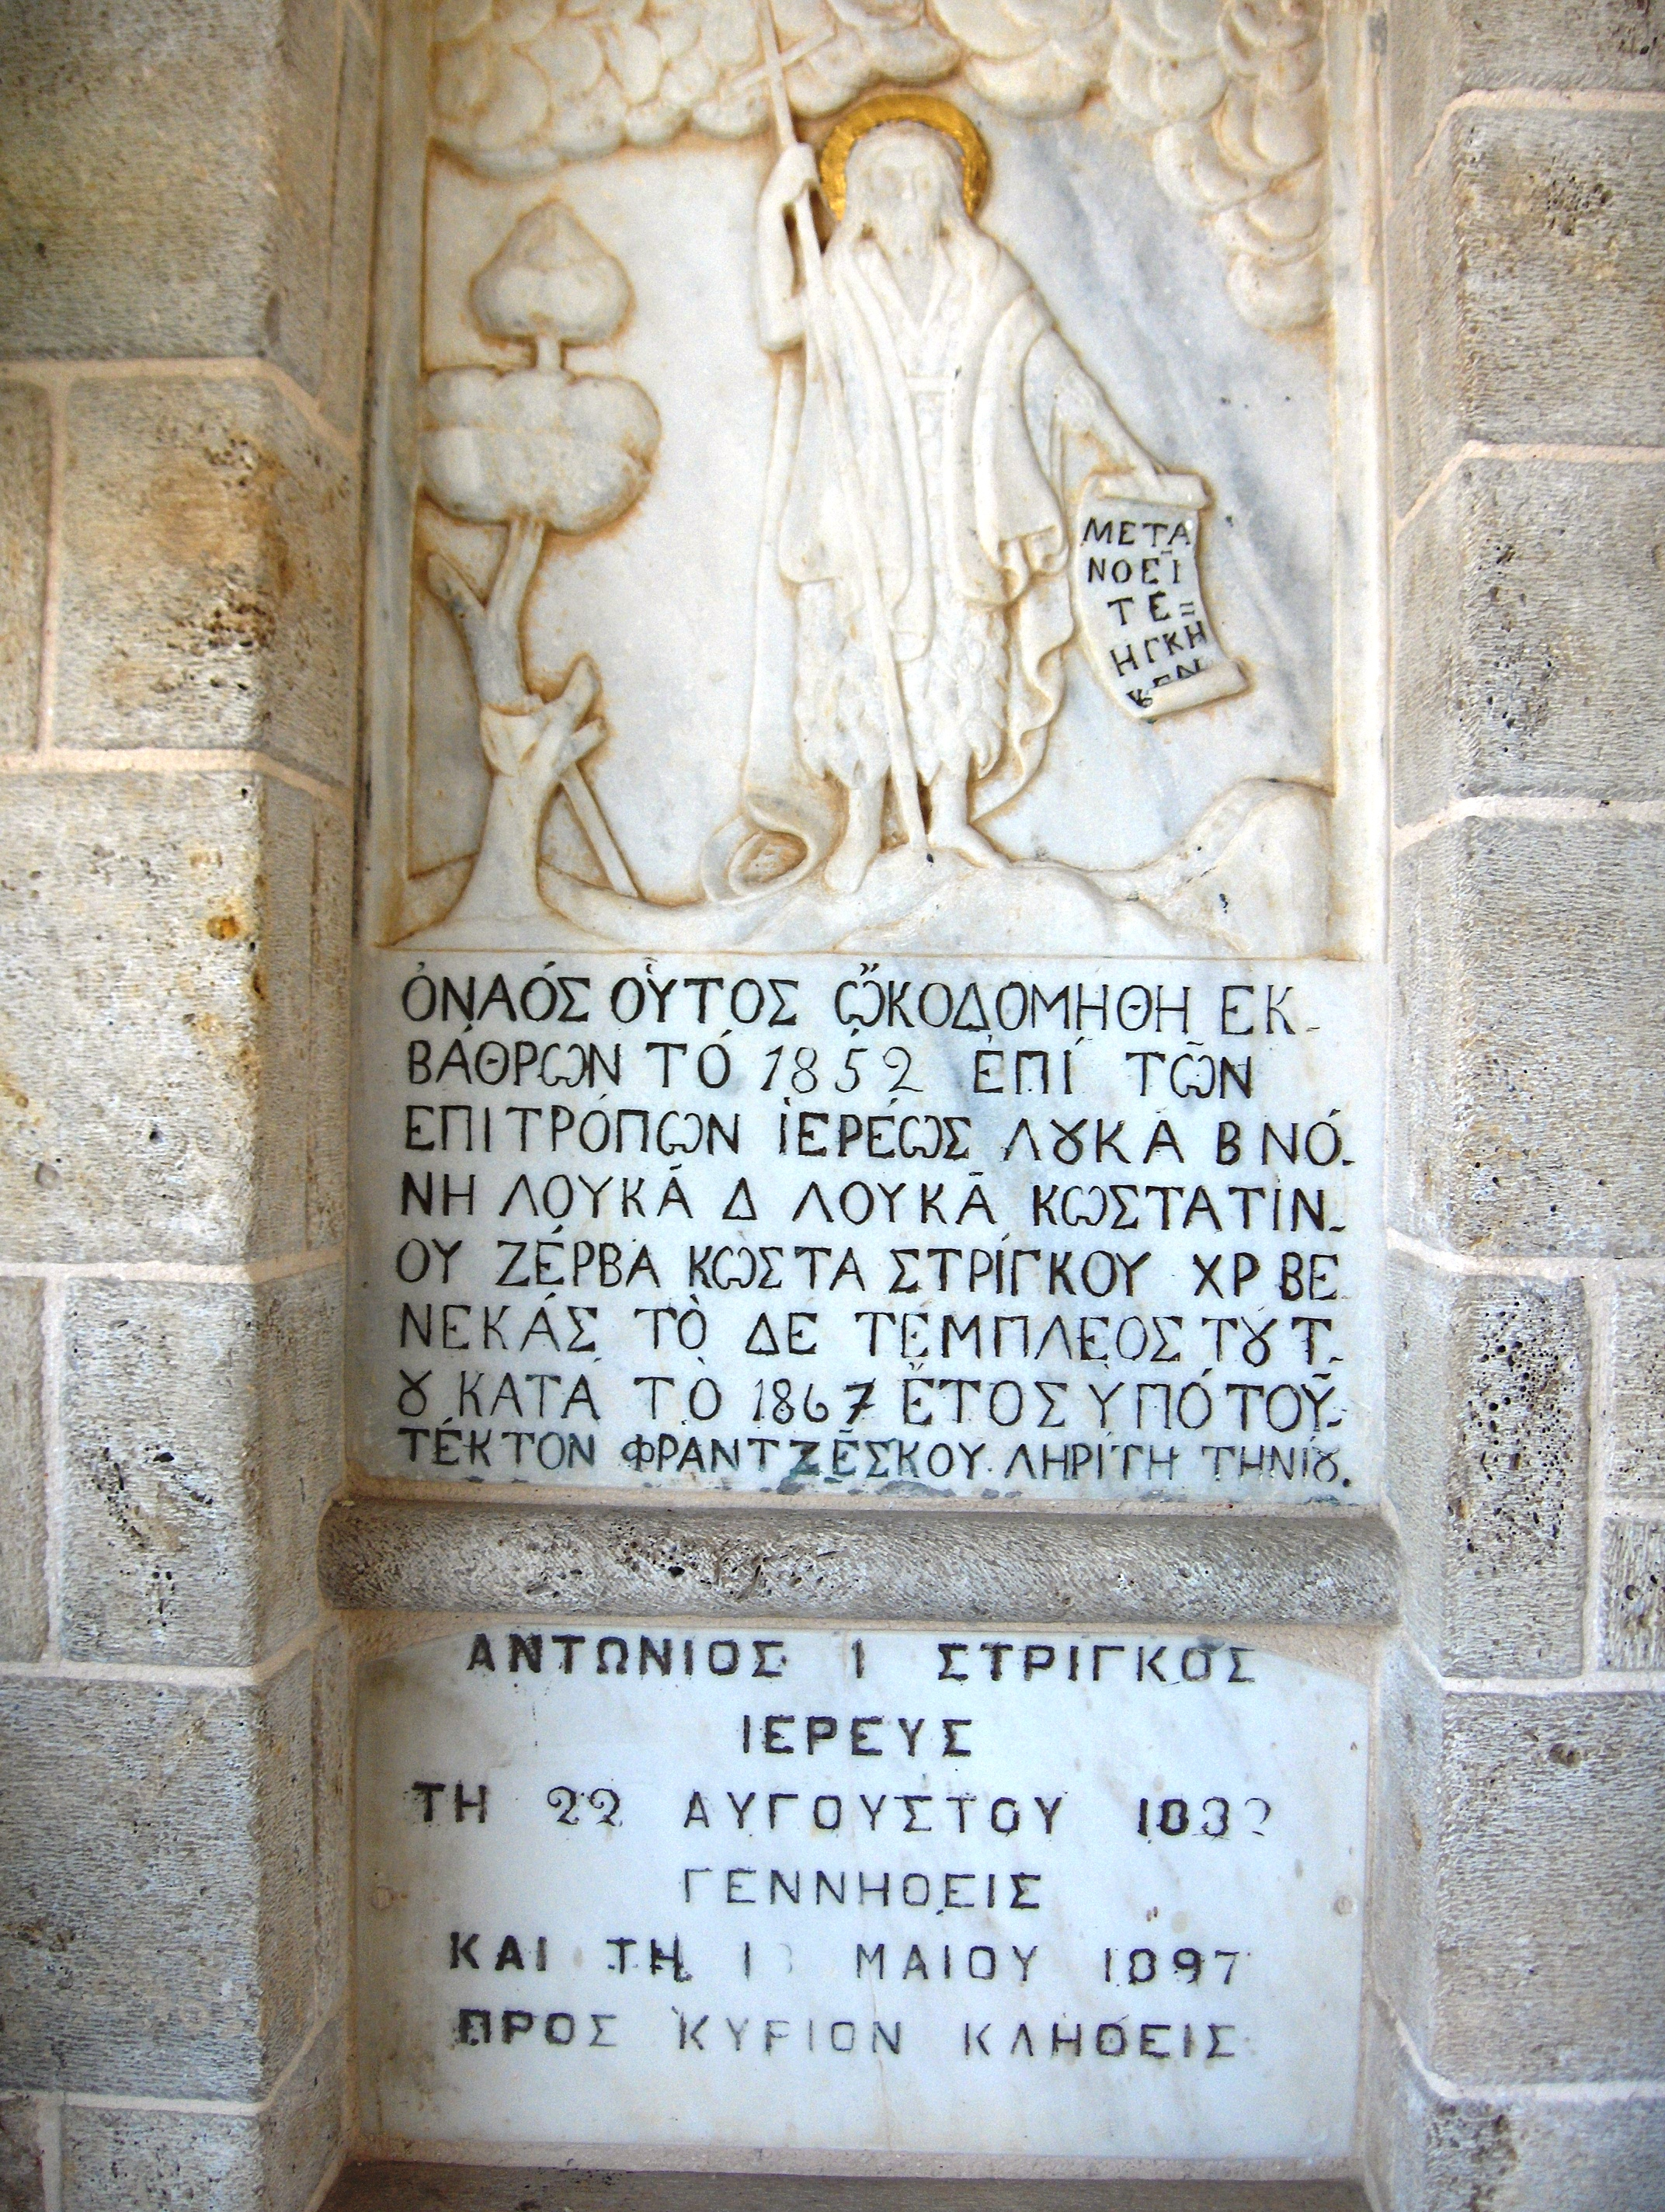 https://upload.wikimedia.org/wikipedia/commons/2/2d/Commemorative_plaque_in_Prodromos_church_in_Kranidi_2.jpg